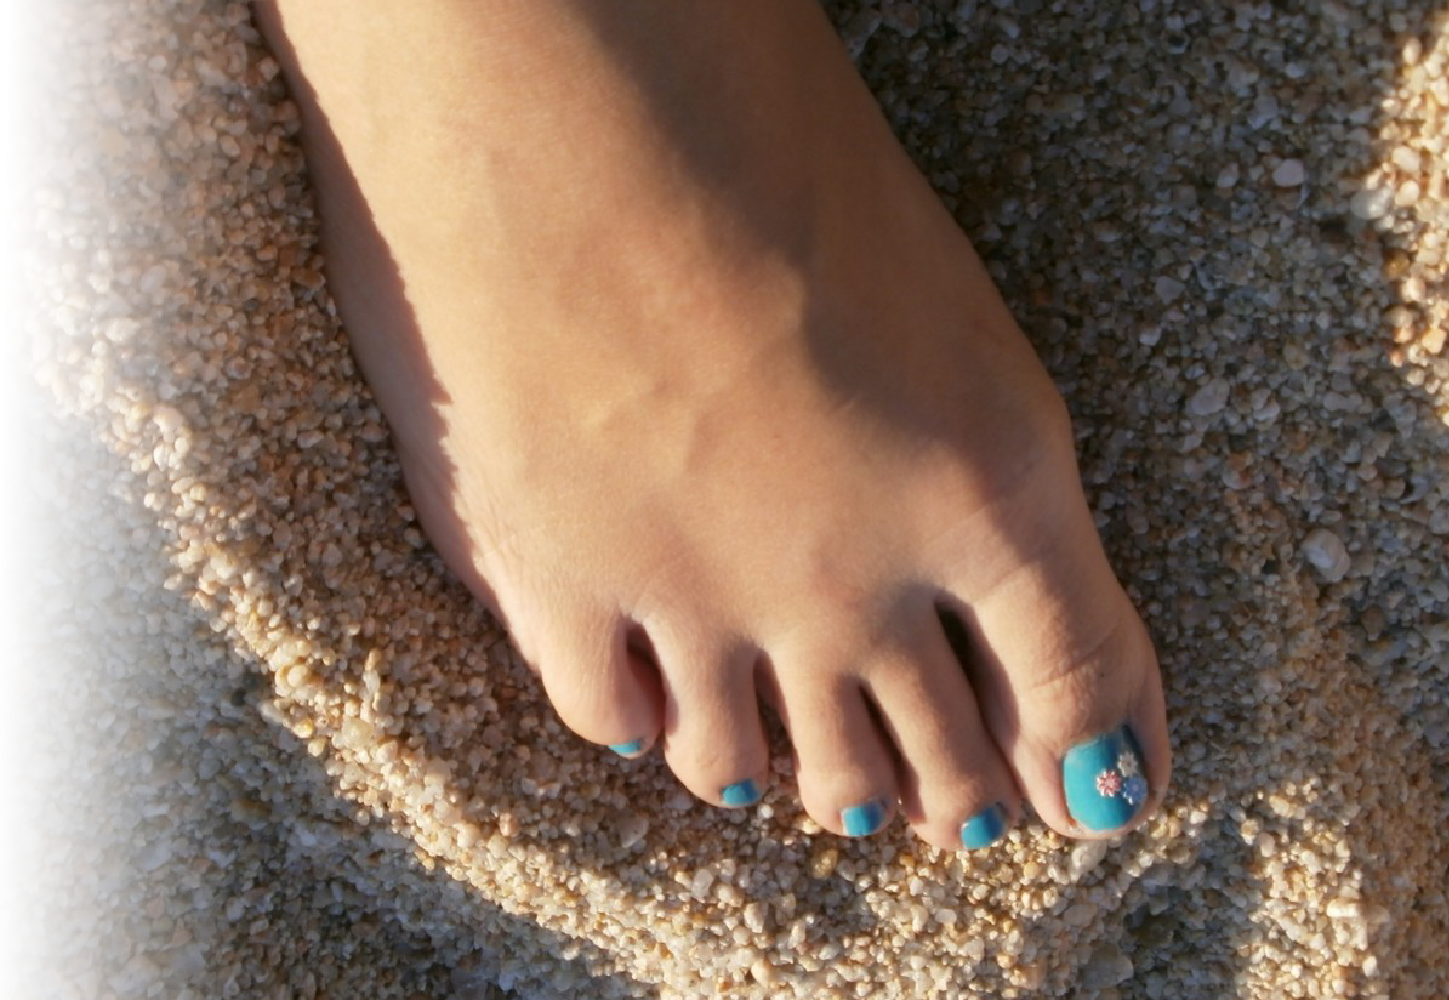 How Does Amorolfine Treat Fungal Nail Infections?